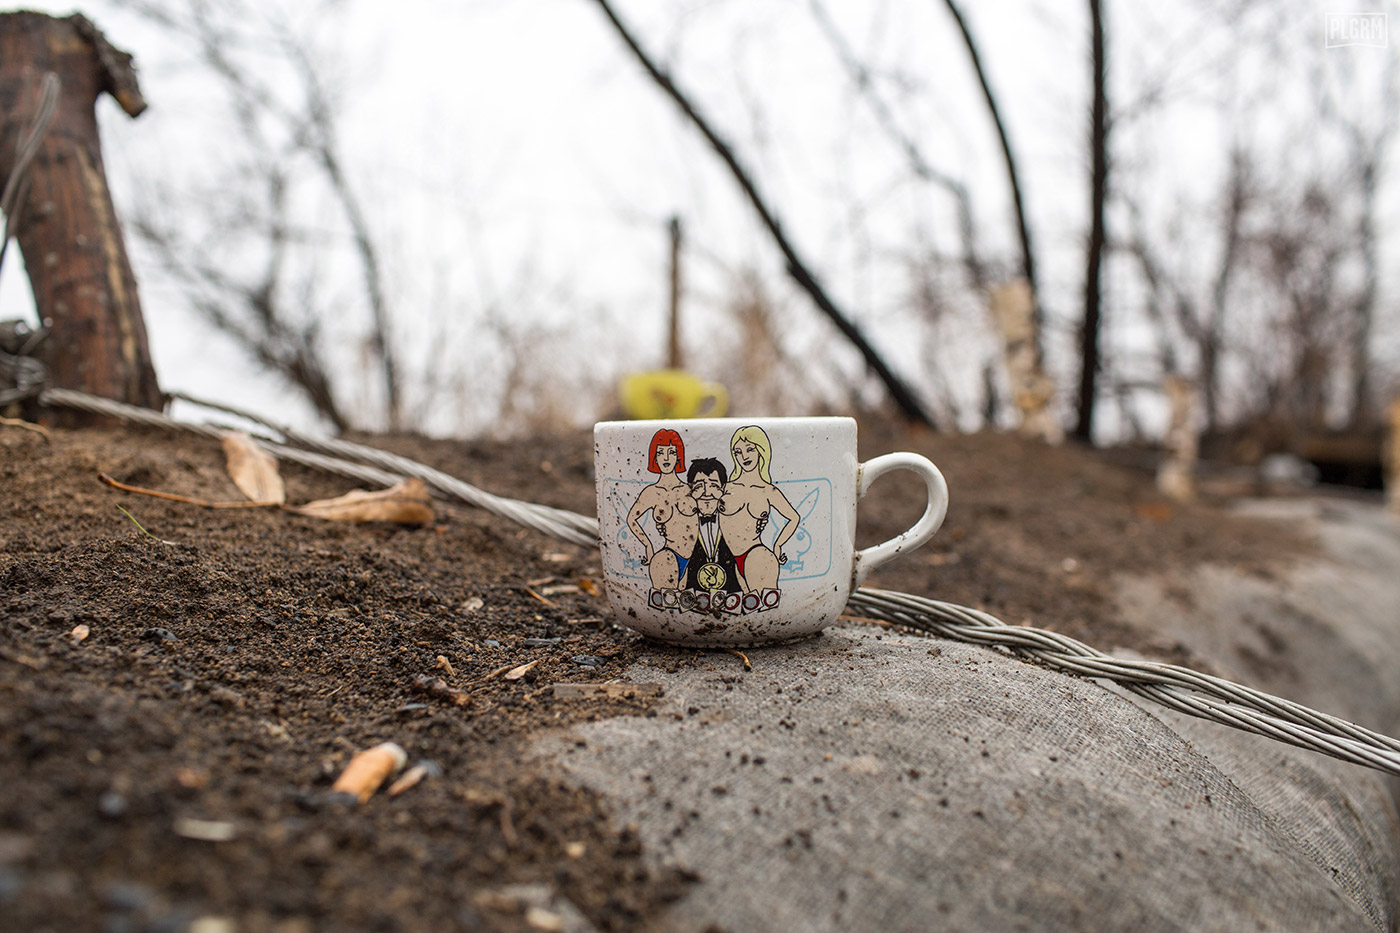 A Playboy coffee cup sits on the edge of trenches in Donetsk.